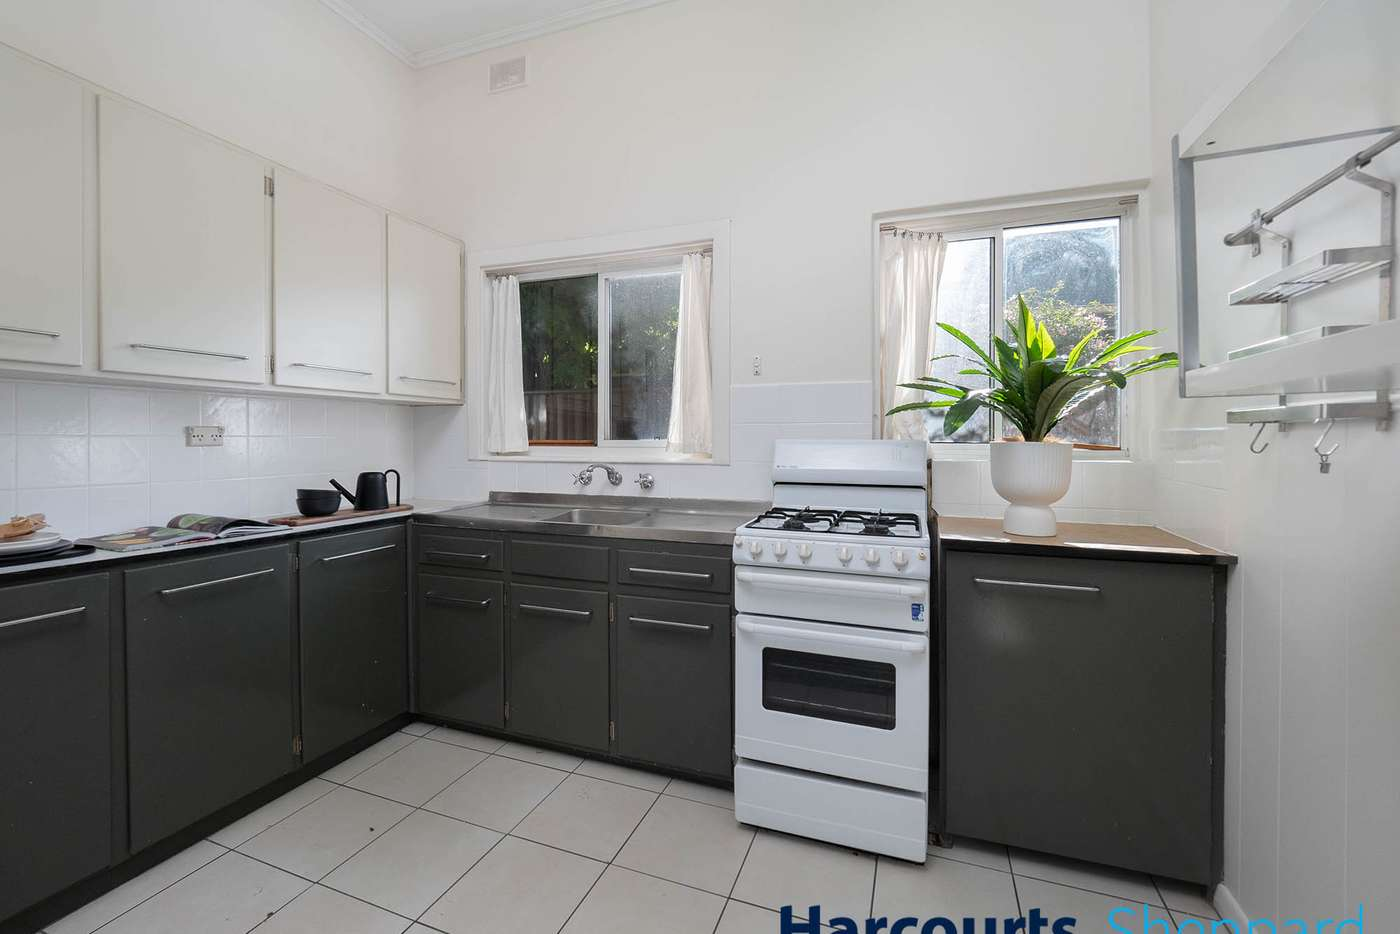 Fifth view of Homely house listing, 13a Norma Street, Mile End SA 5031